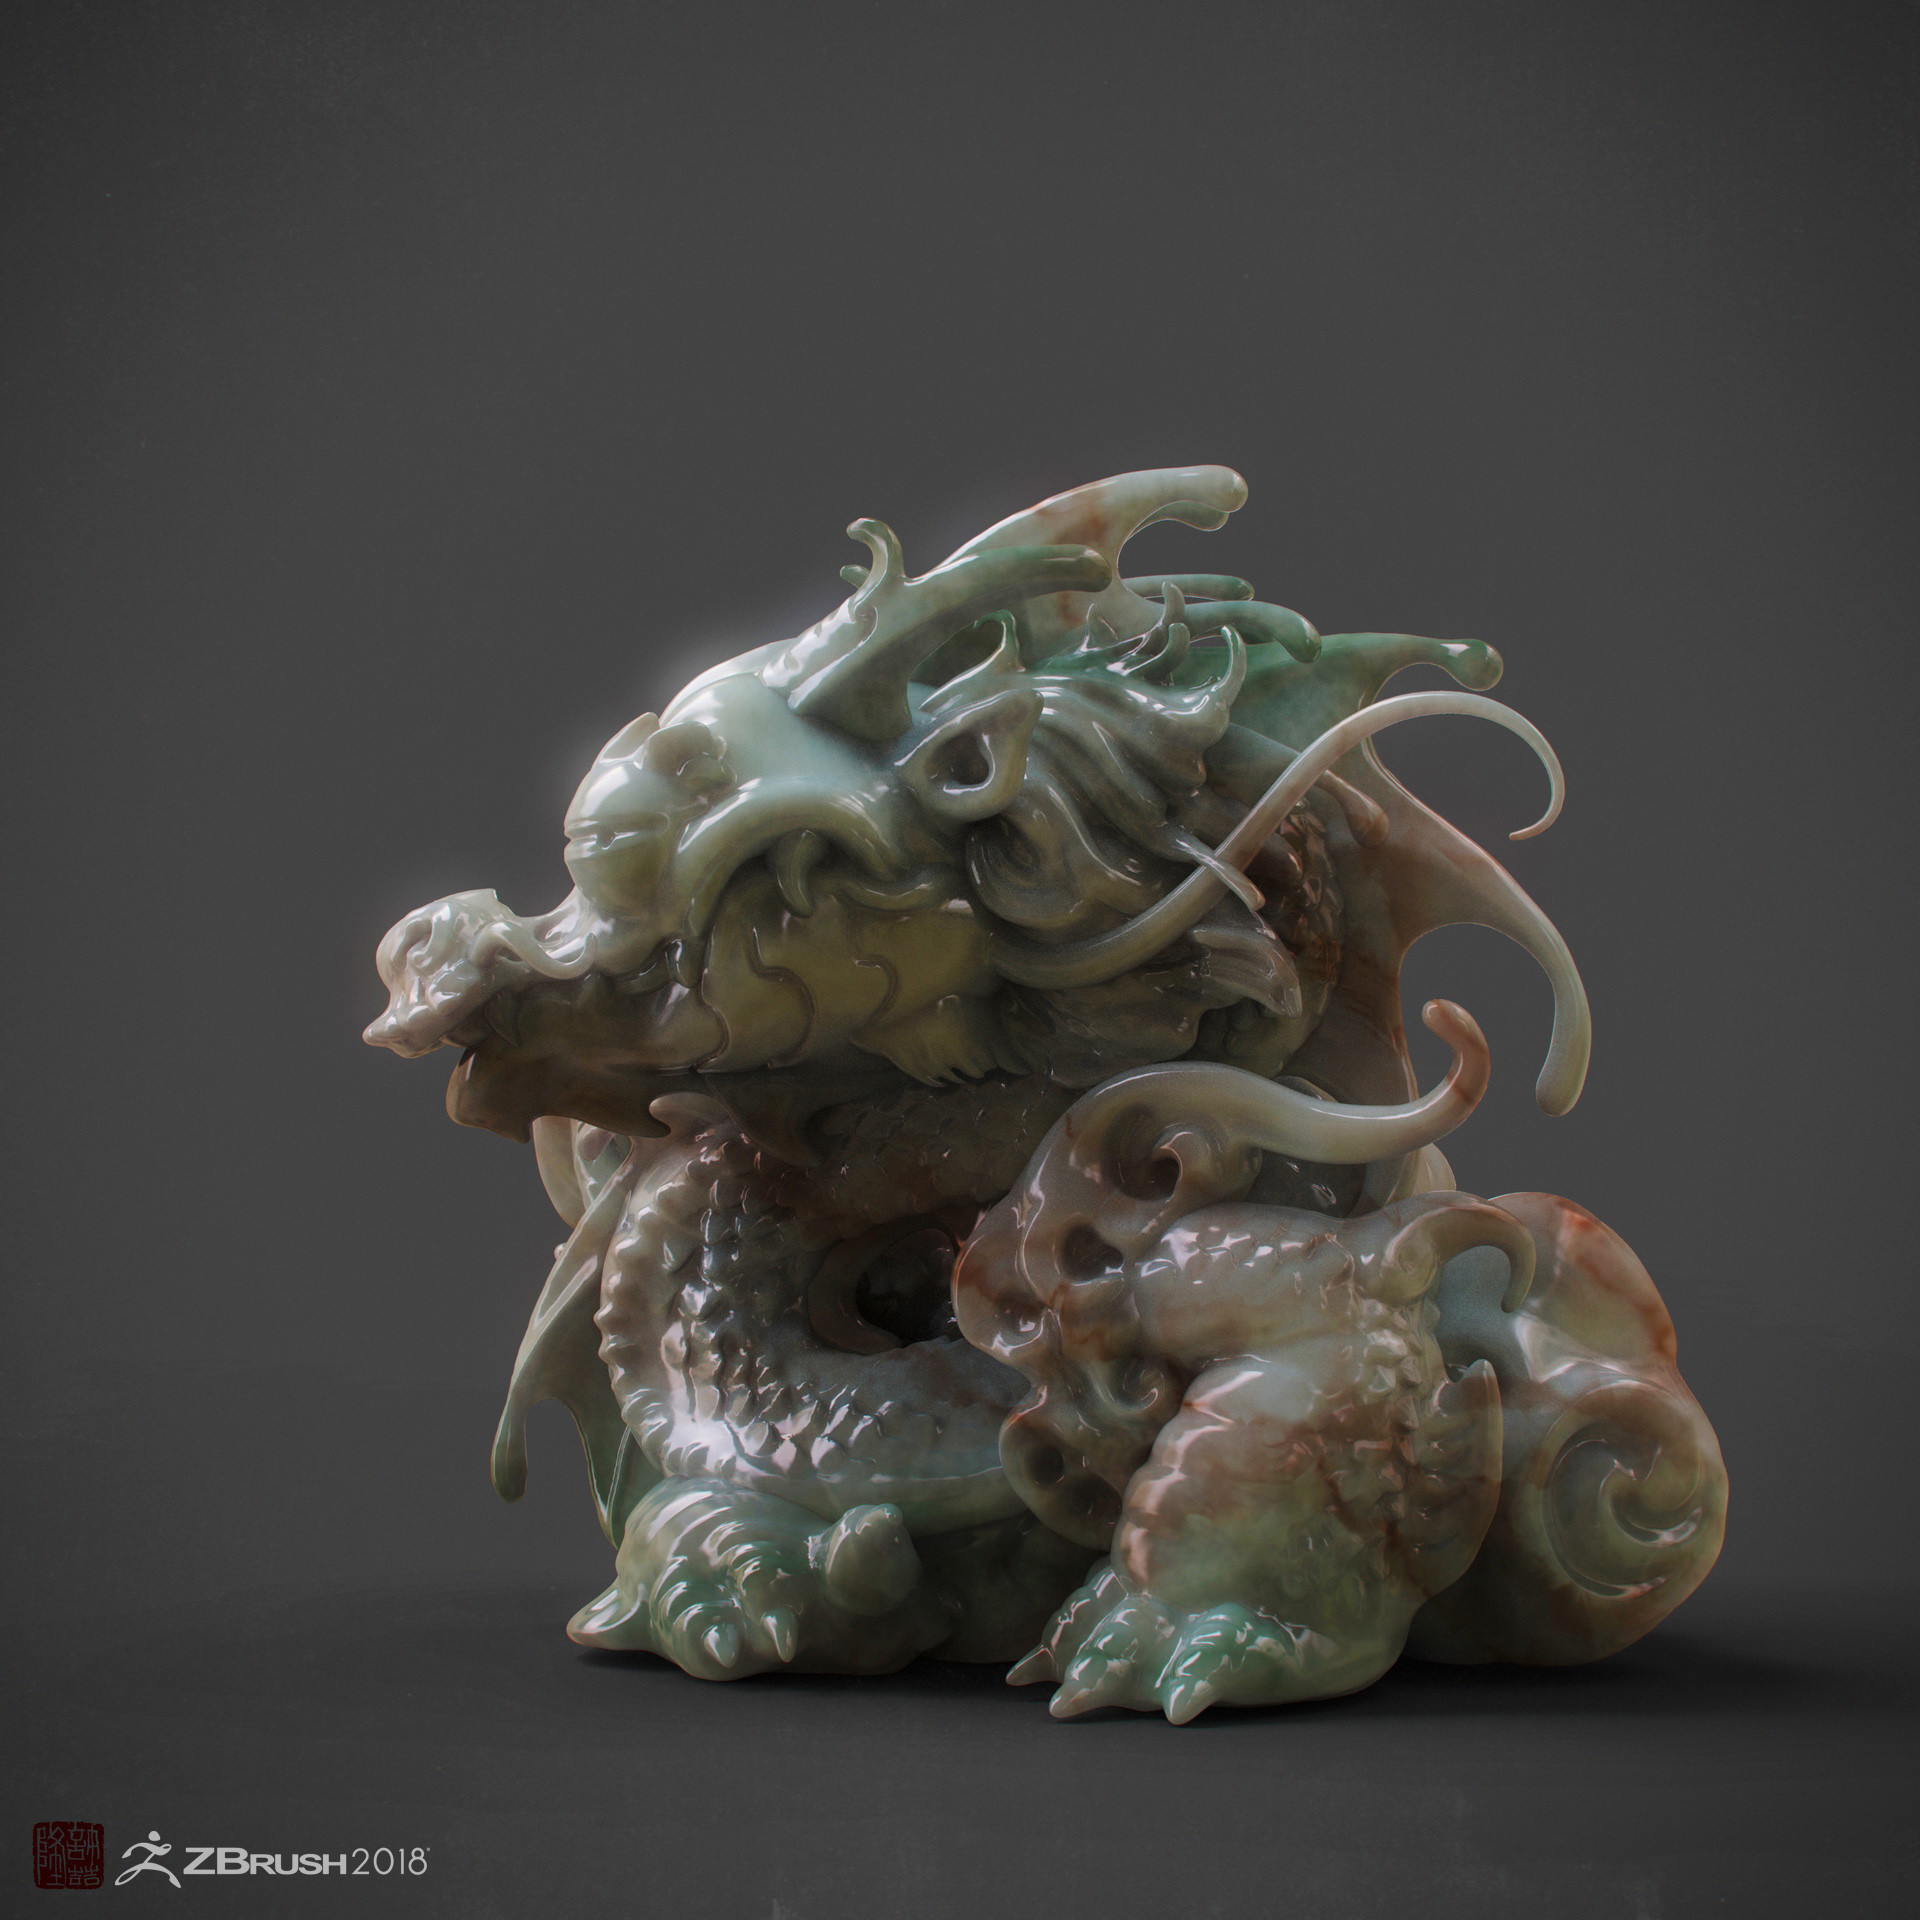 Zhelong xu the babydragon02